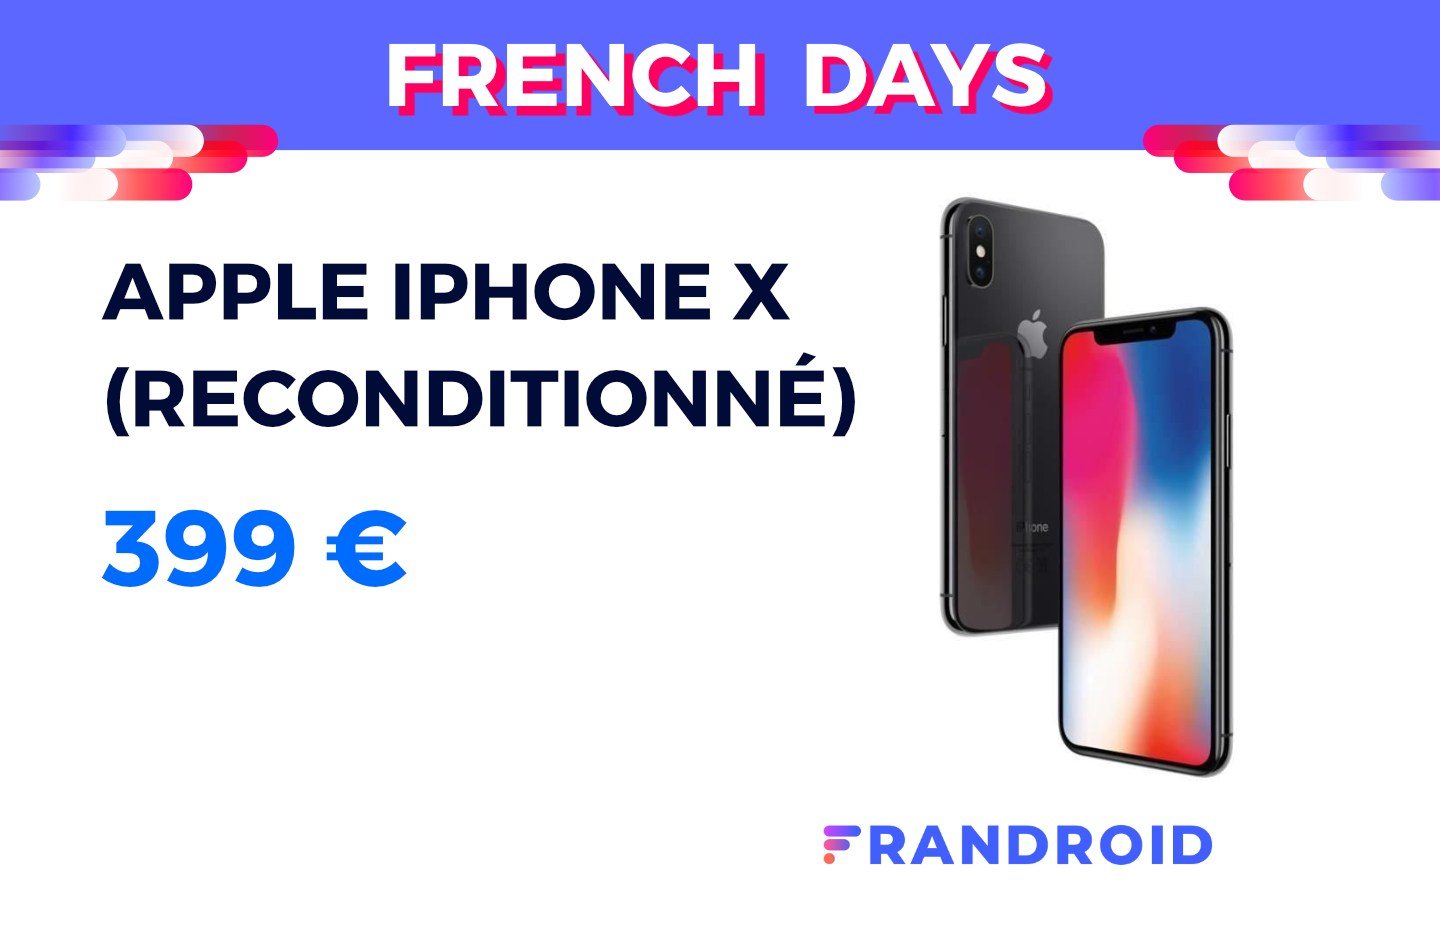 Pour les French Days, l'iPhone X est disponible à 399 € en reconditionné